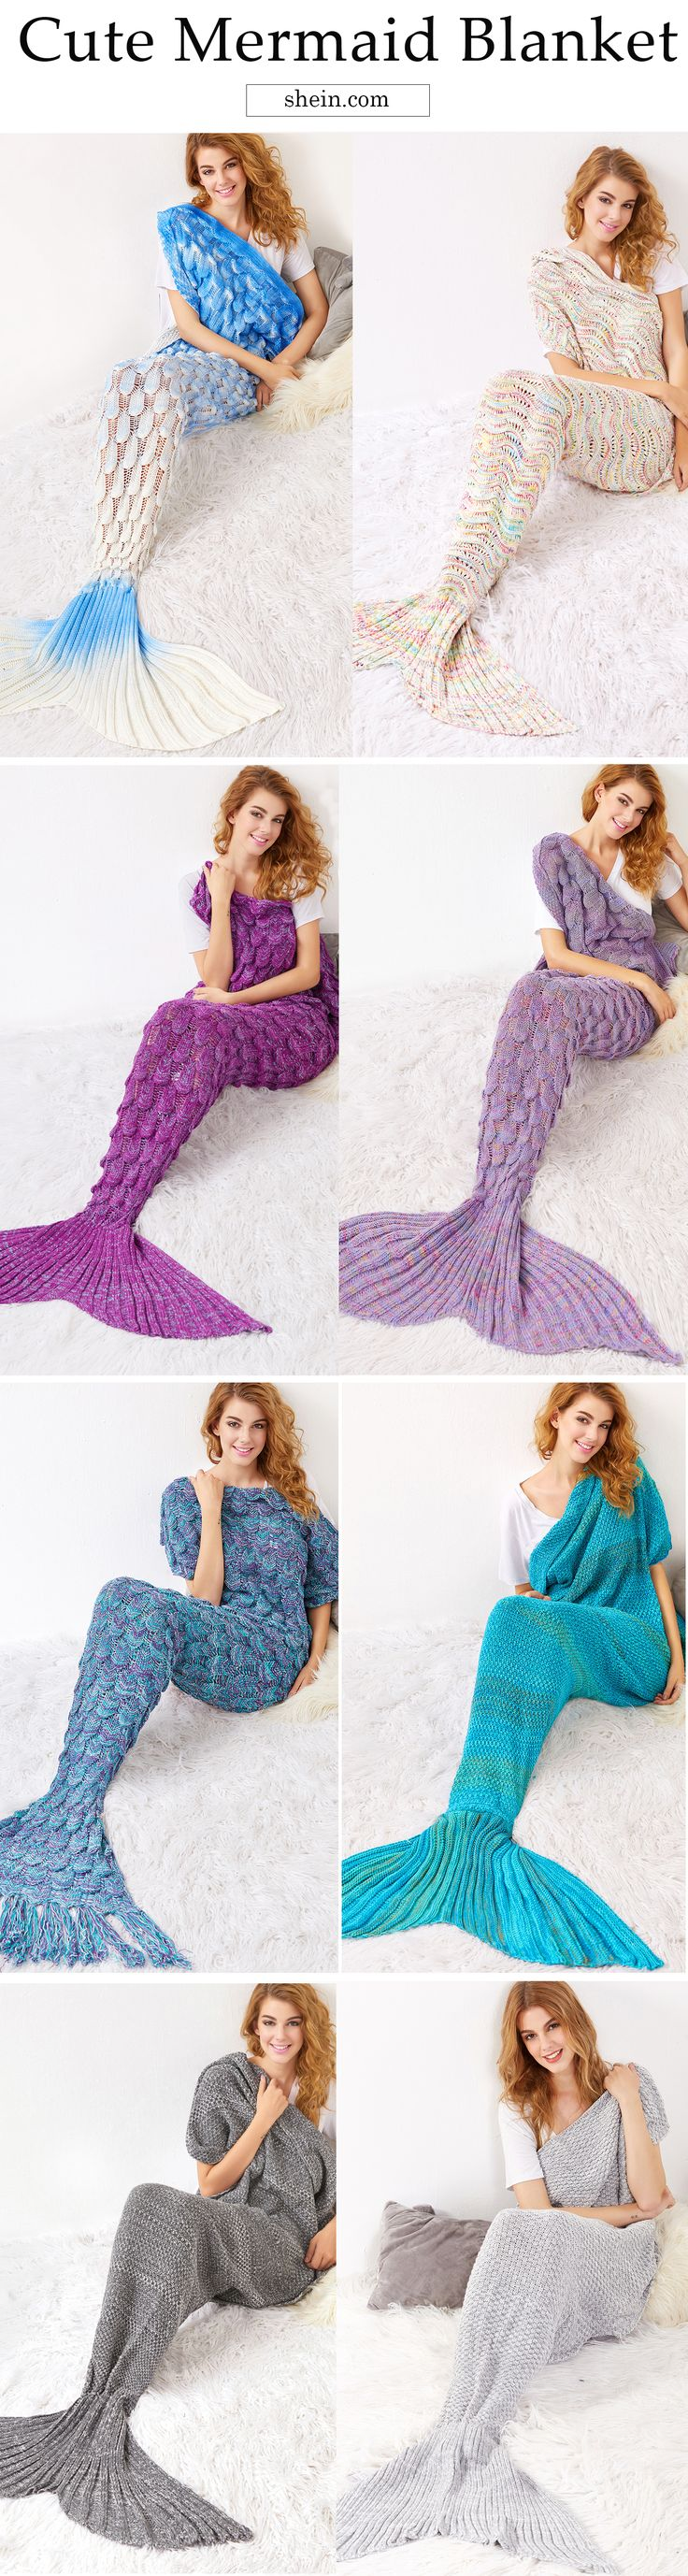 Cozy knit blanket for winter. Warm mermaid tail blanket for bedroom.